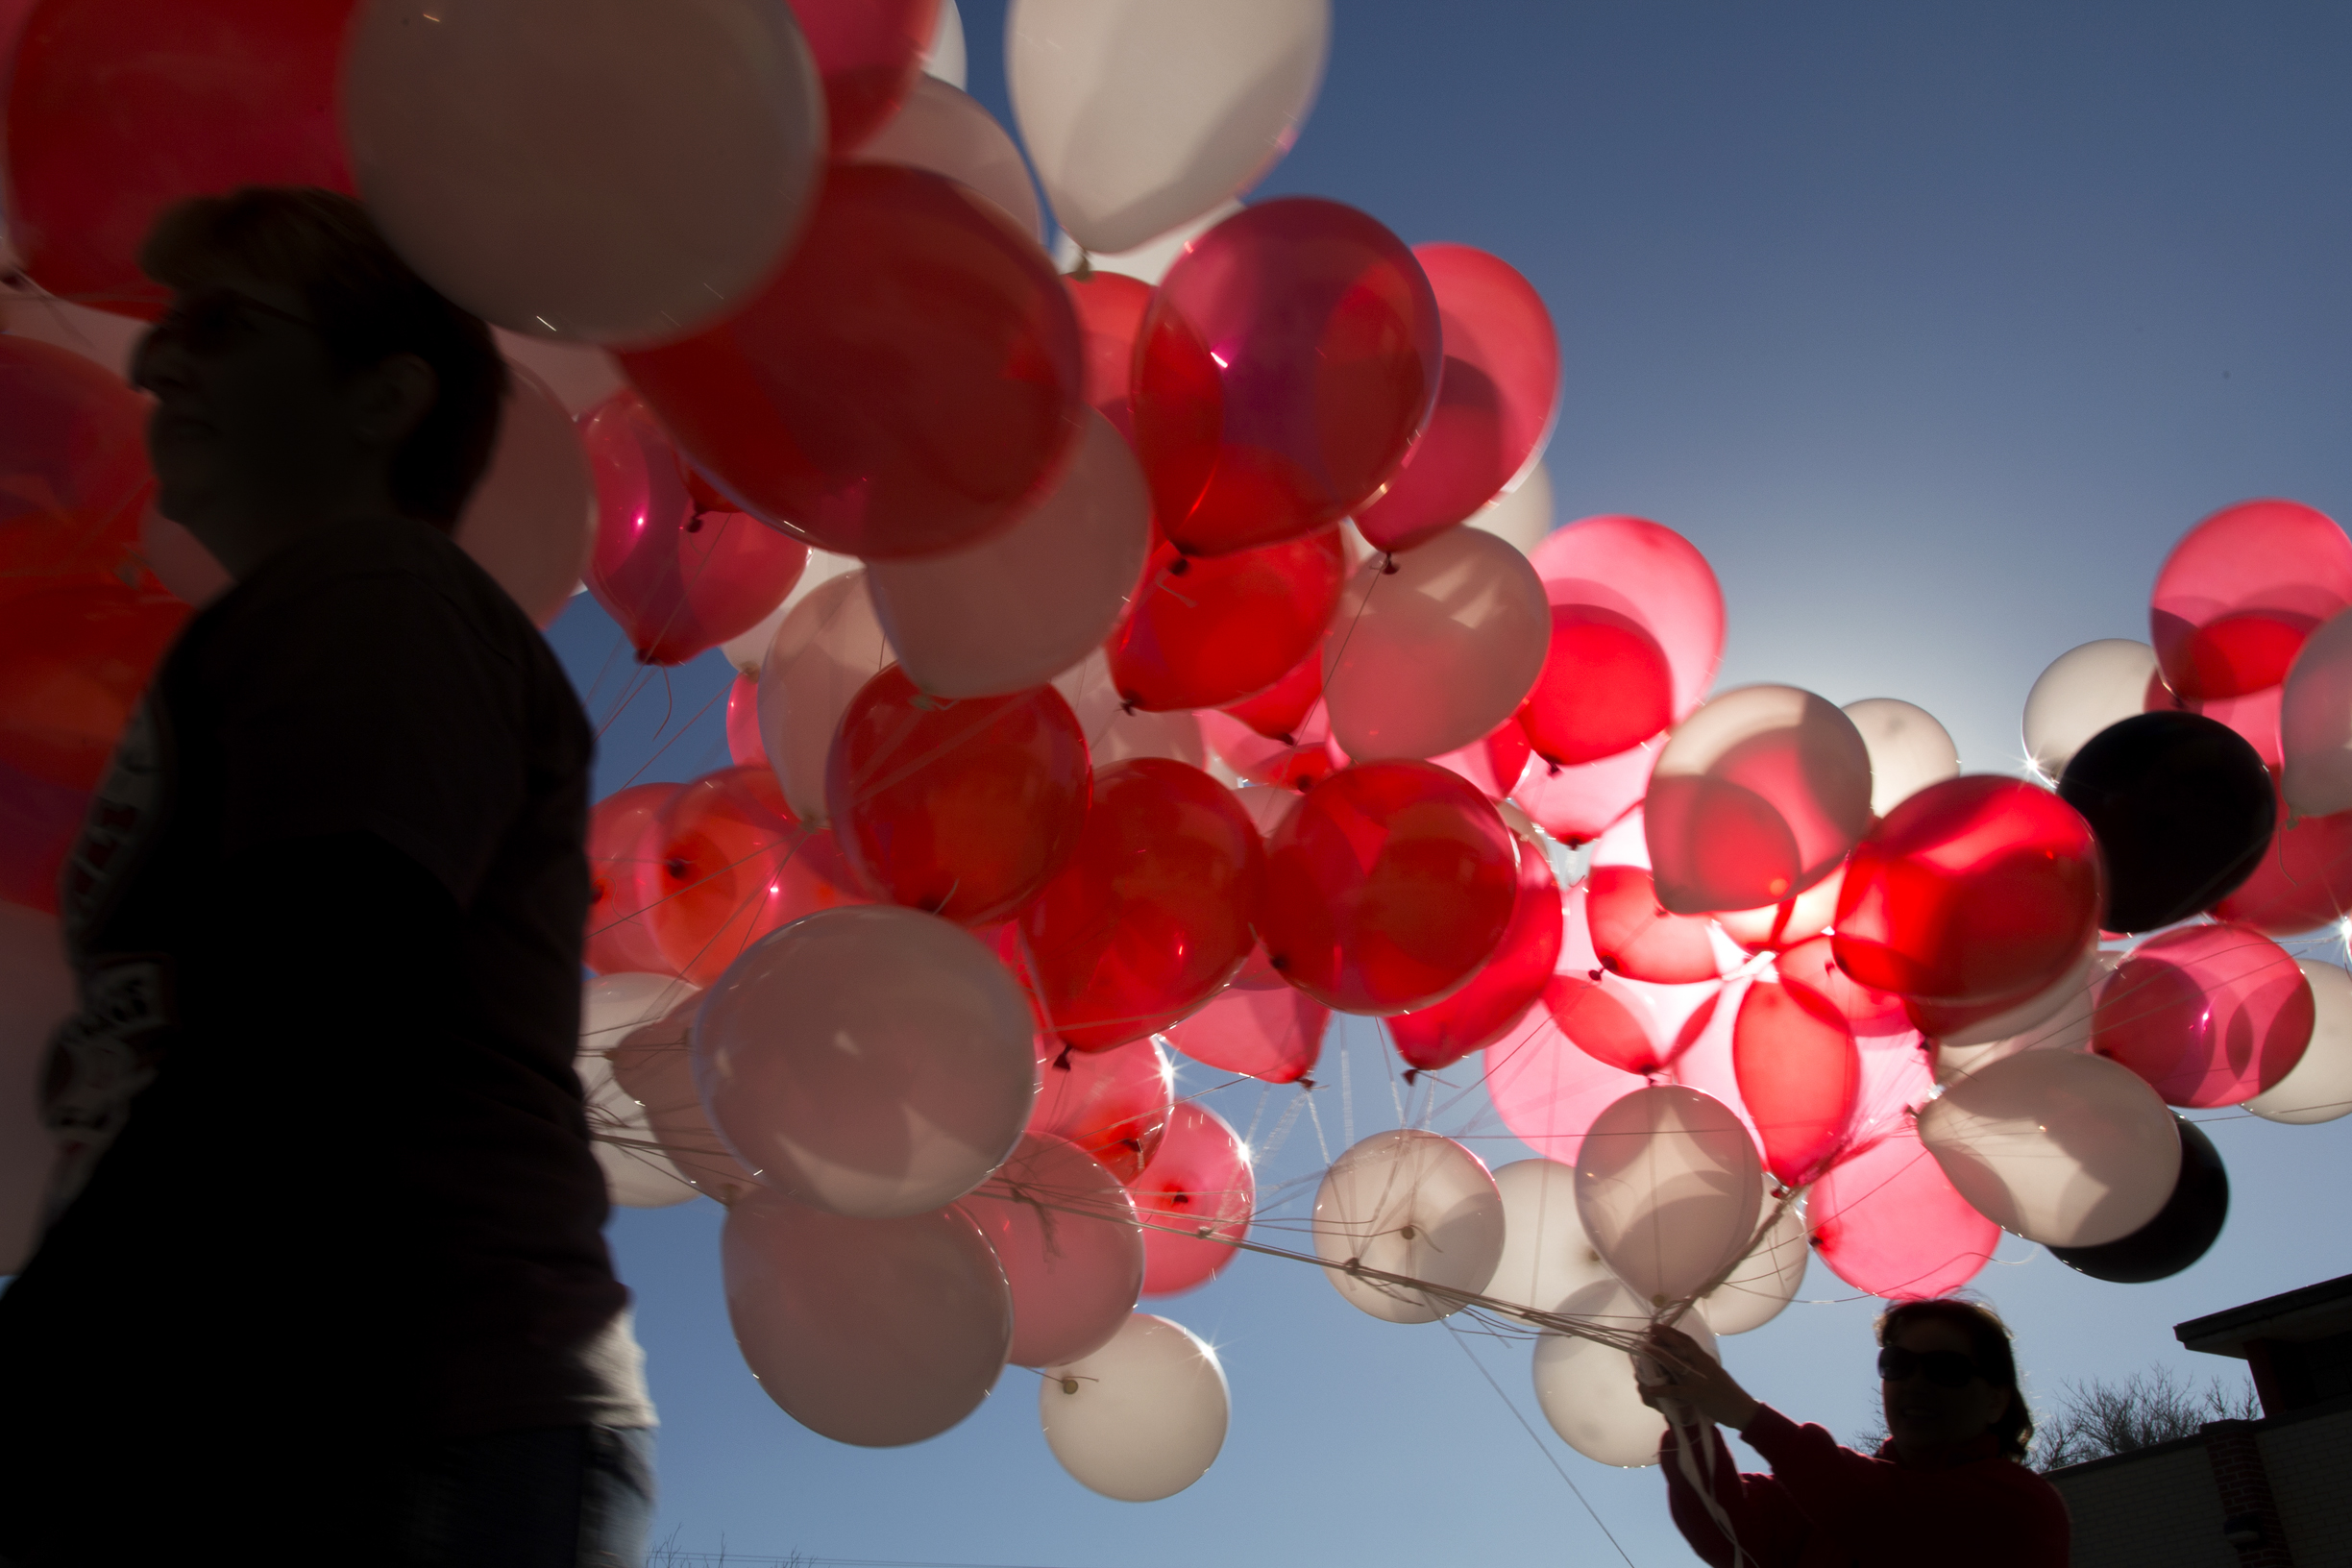 Volunteers carry balloons from inside the school to the football field.